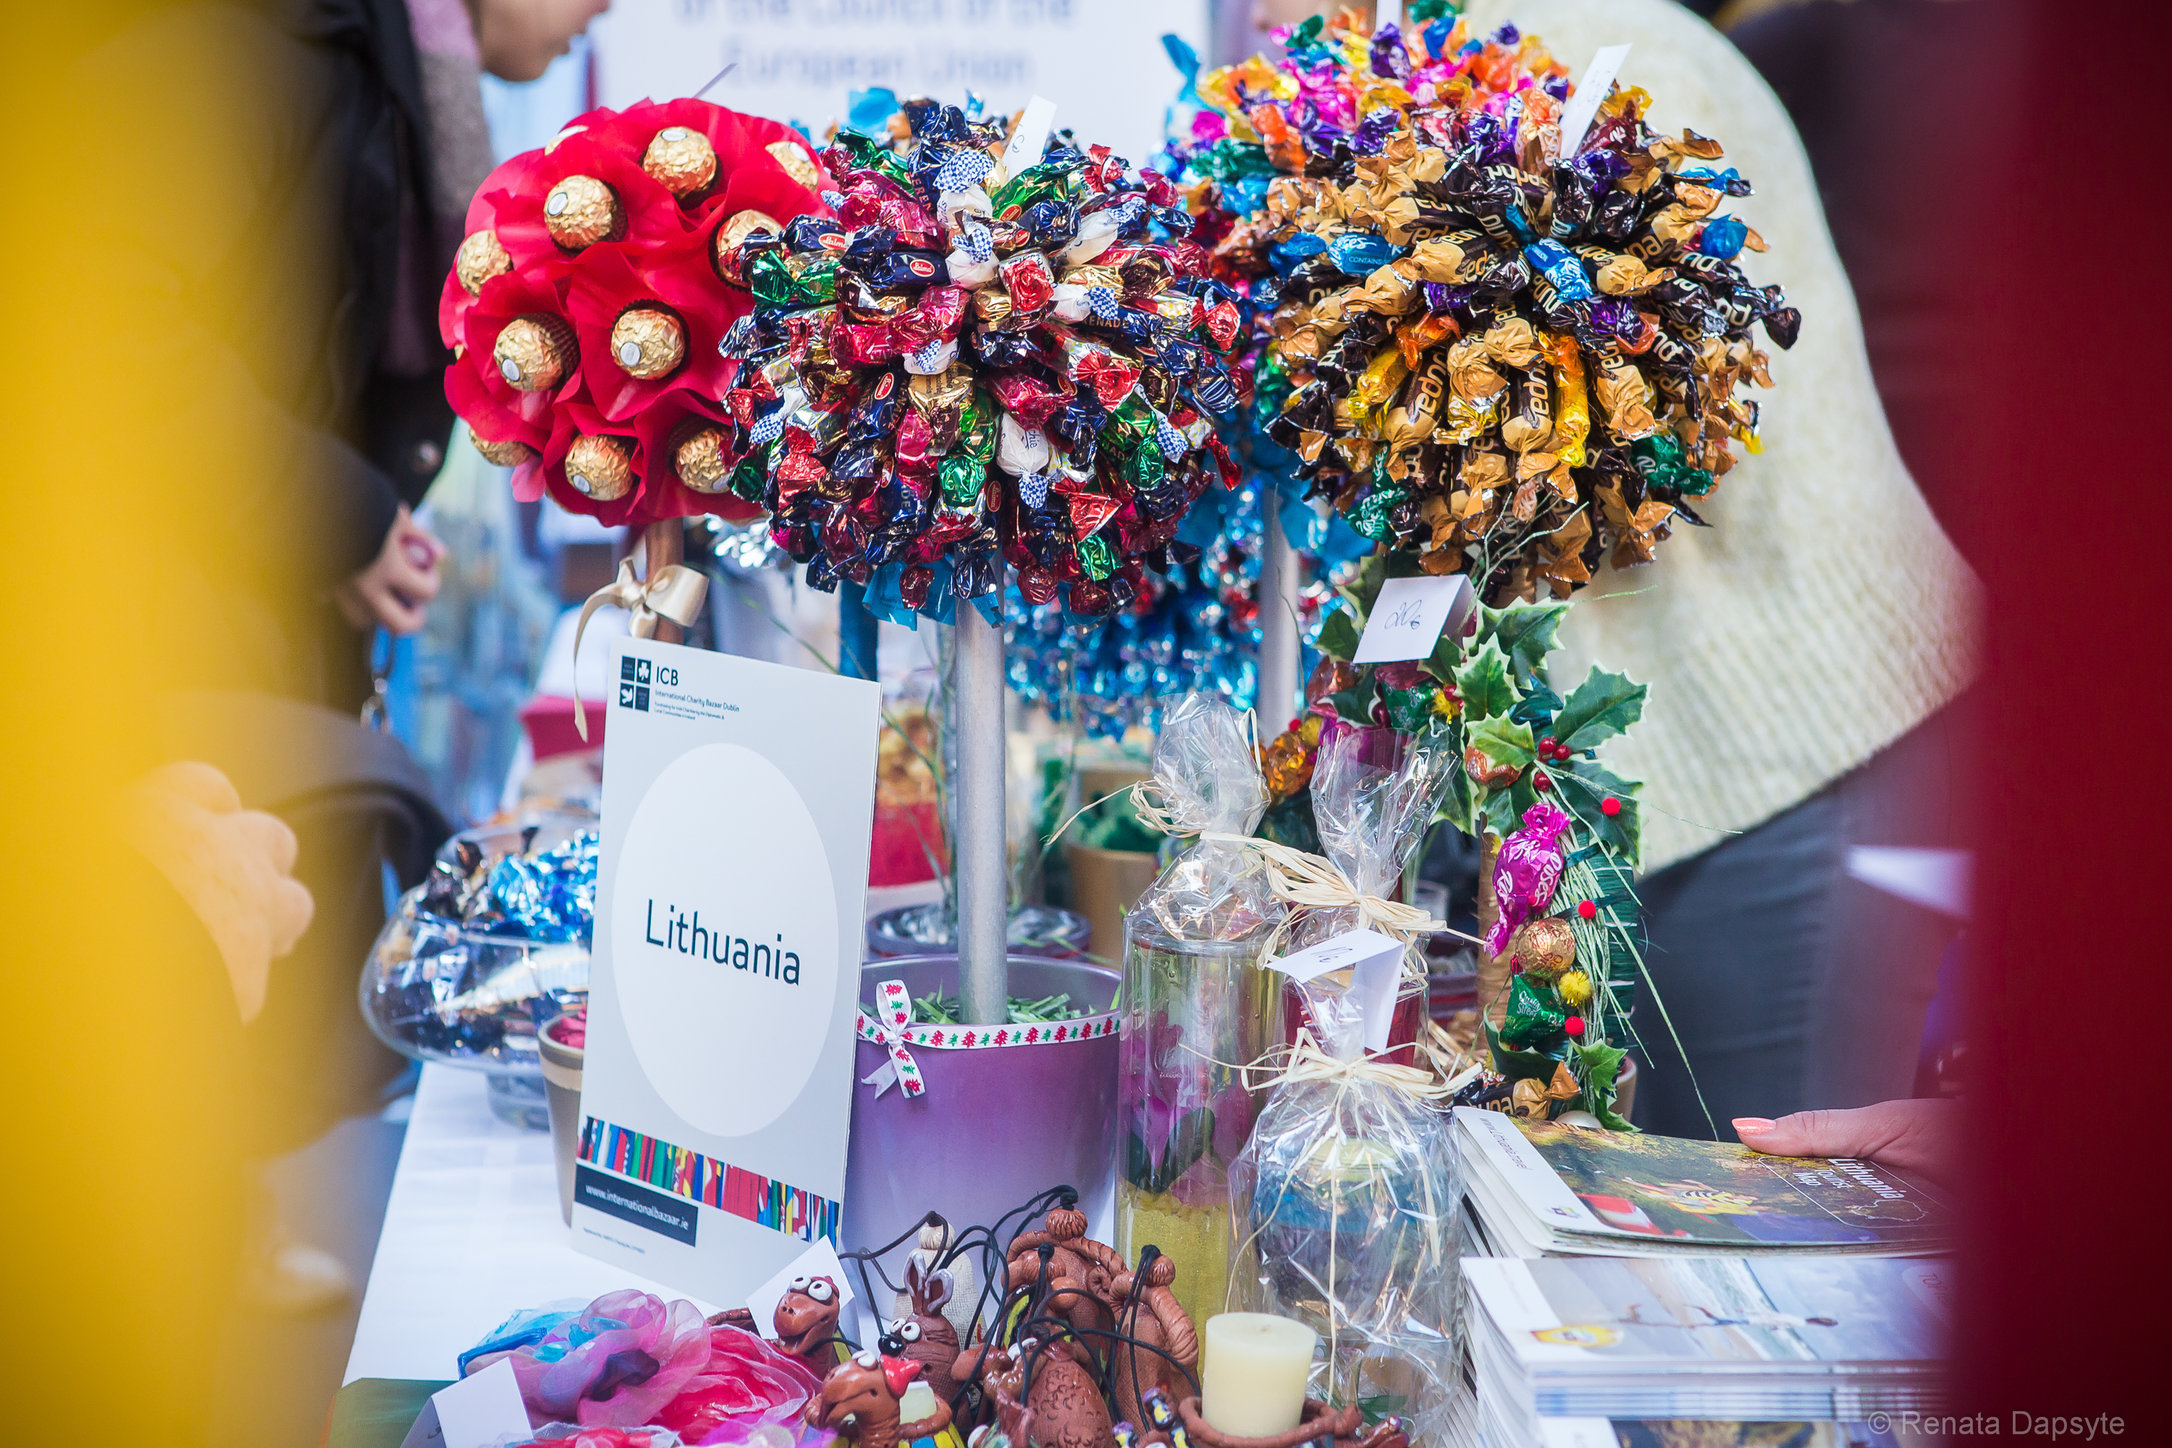 008_International Charity Bazaar Dublin 2013.JPG